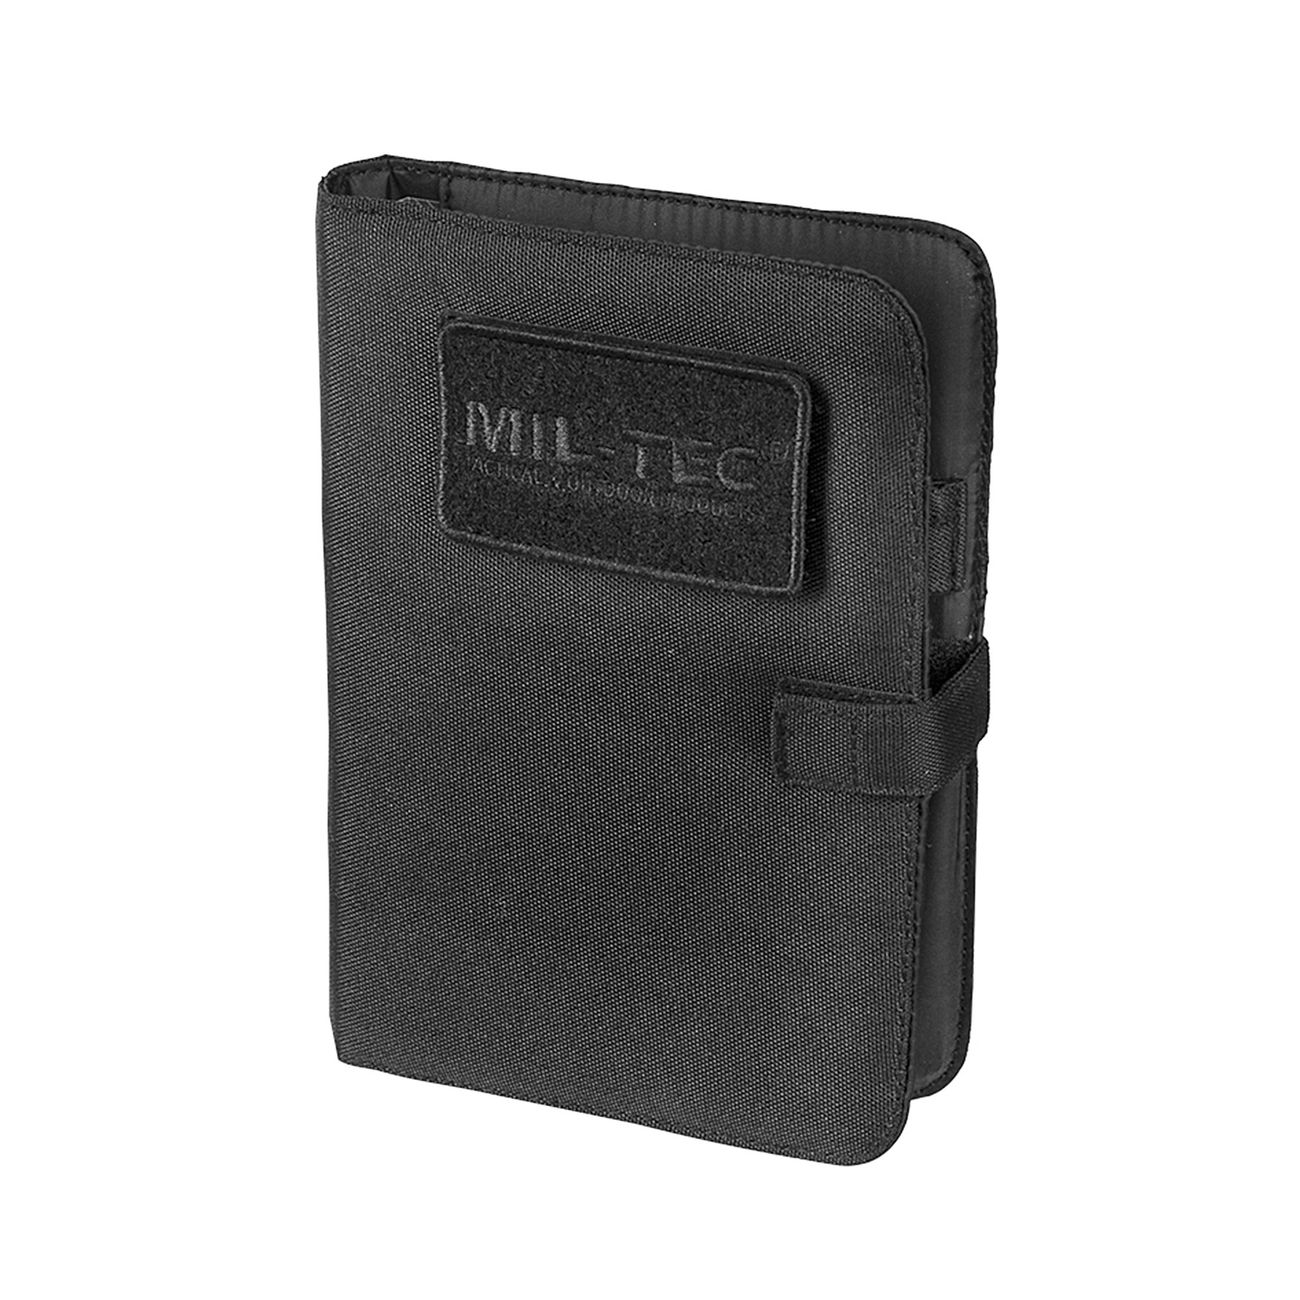 Mil-Tec Tactical Notizbuch Small schwarz